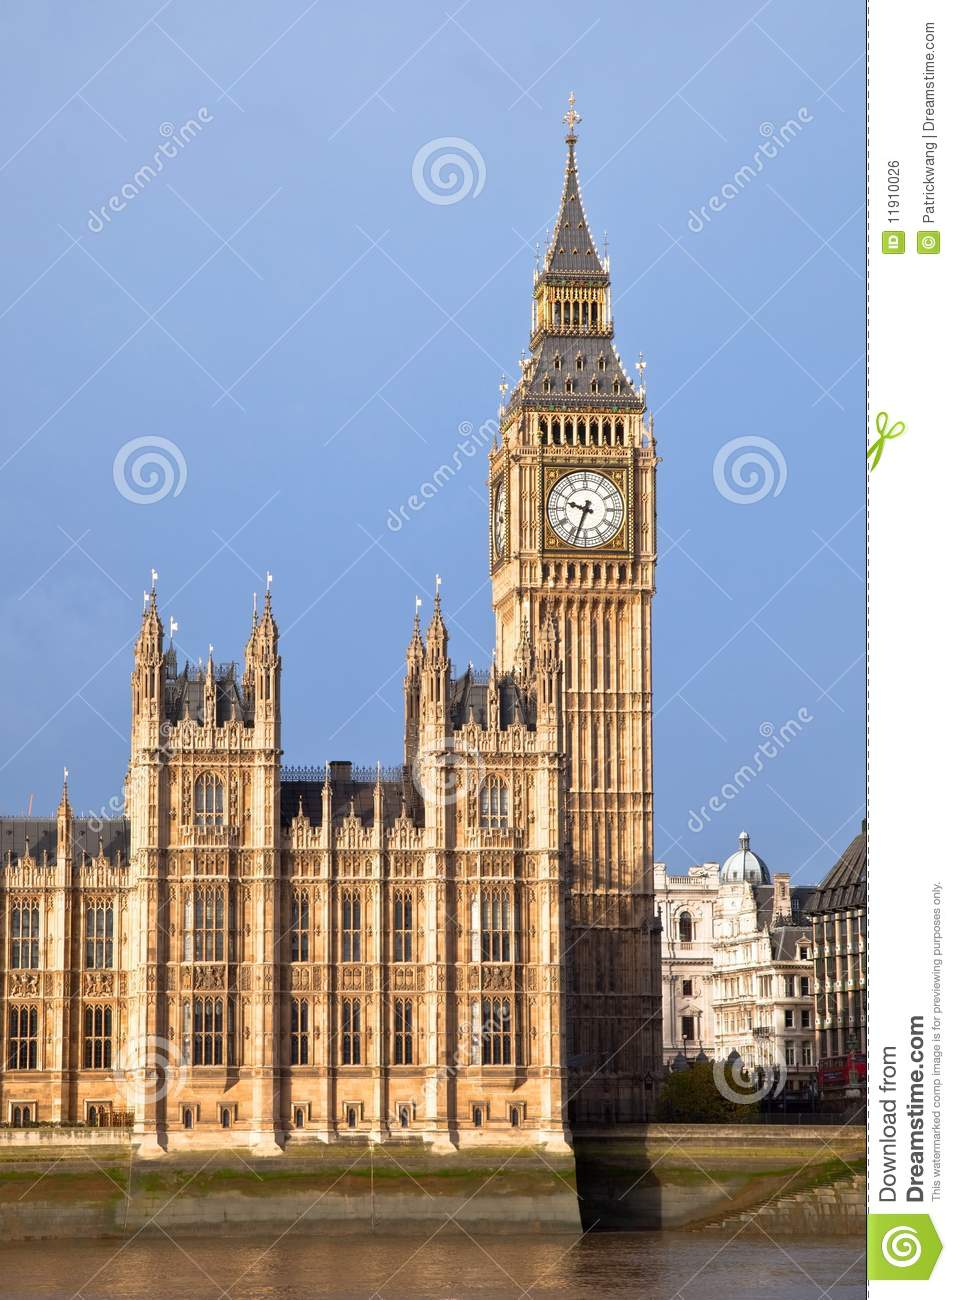 Big Ben Tower Royalty Free Stock Image - Image: 11910026